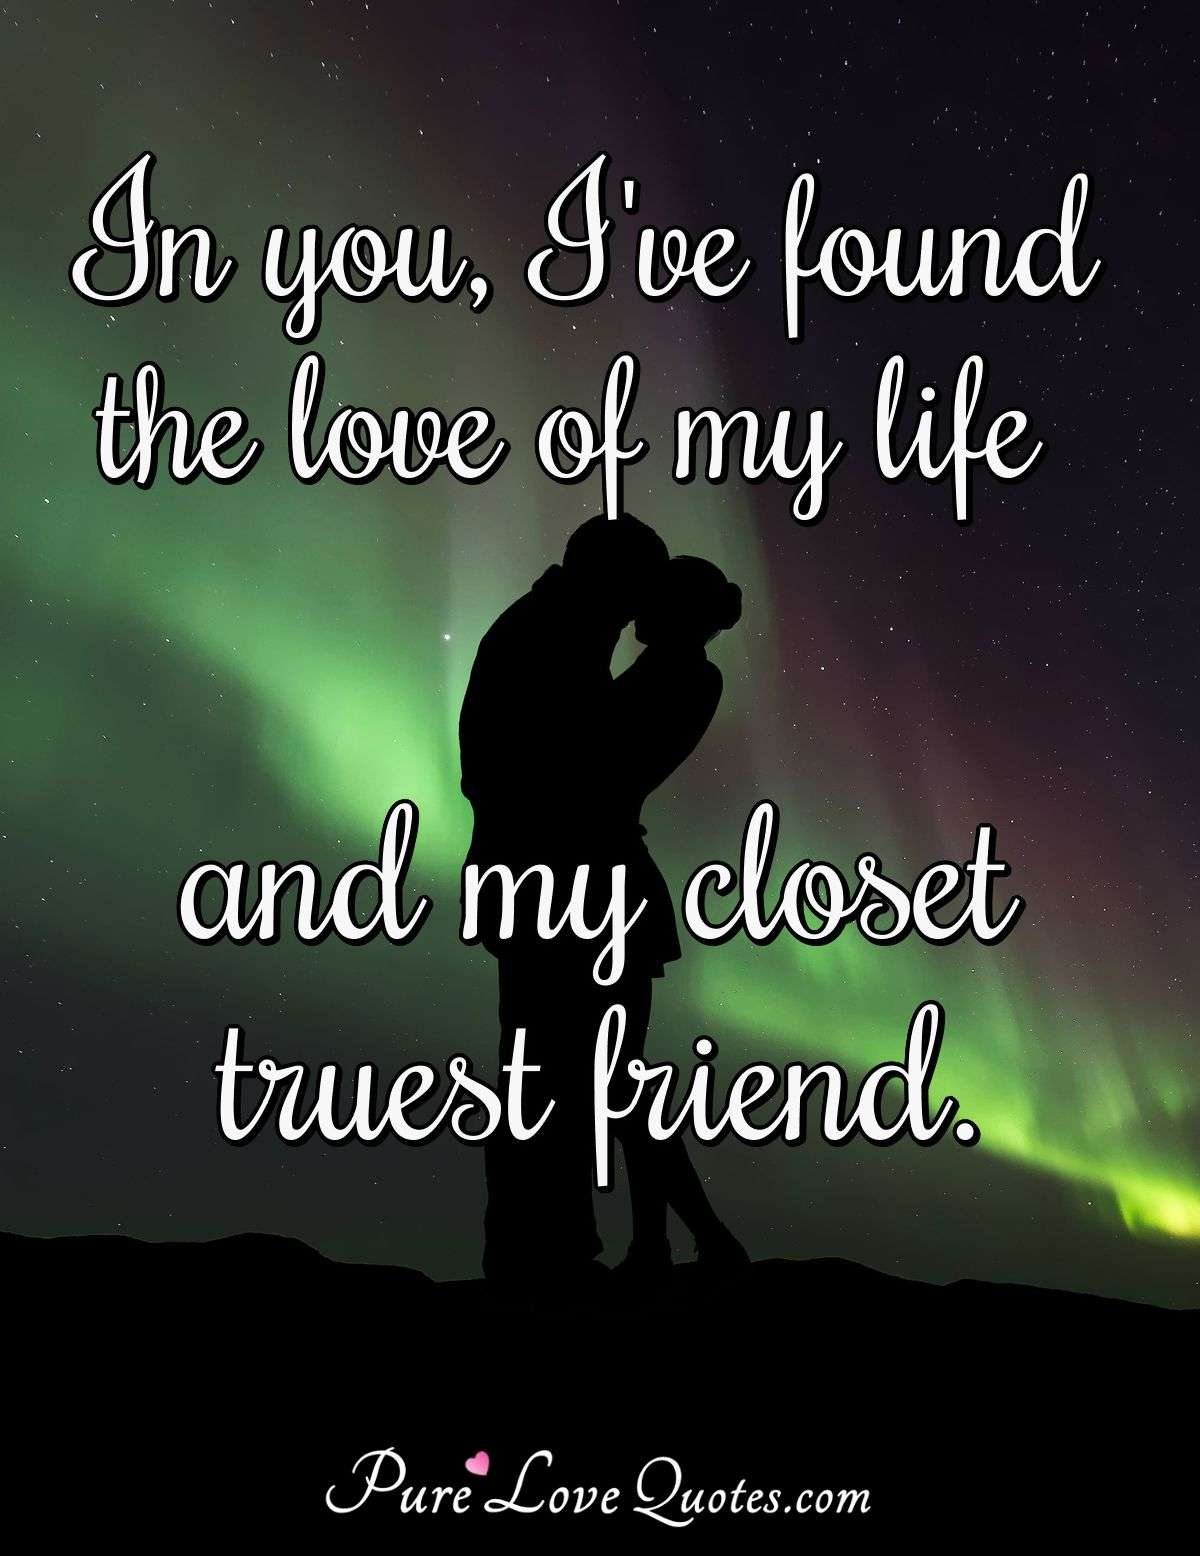 In you, I've found the love of my life and my closet truest friend. - Anonymous